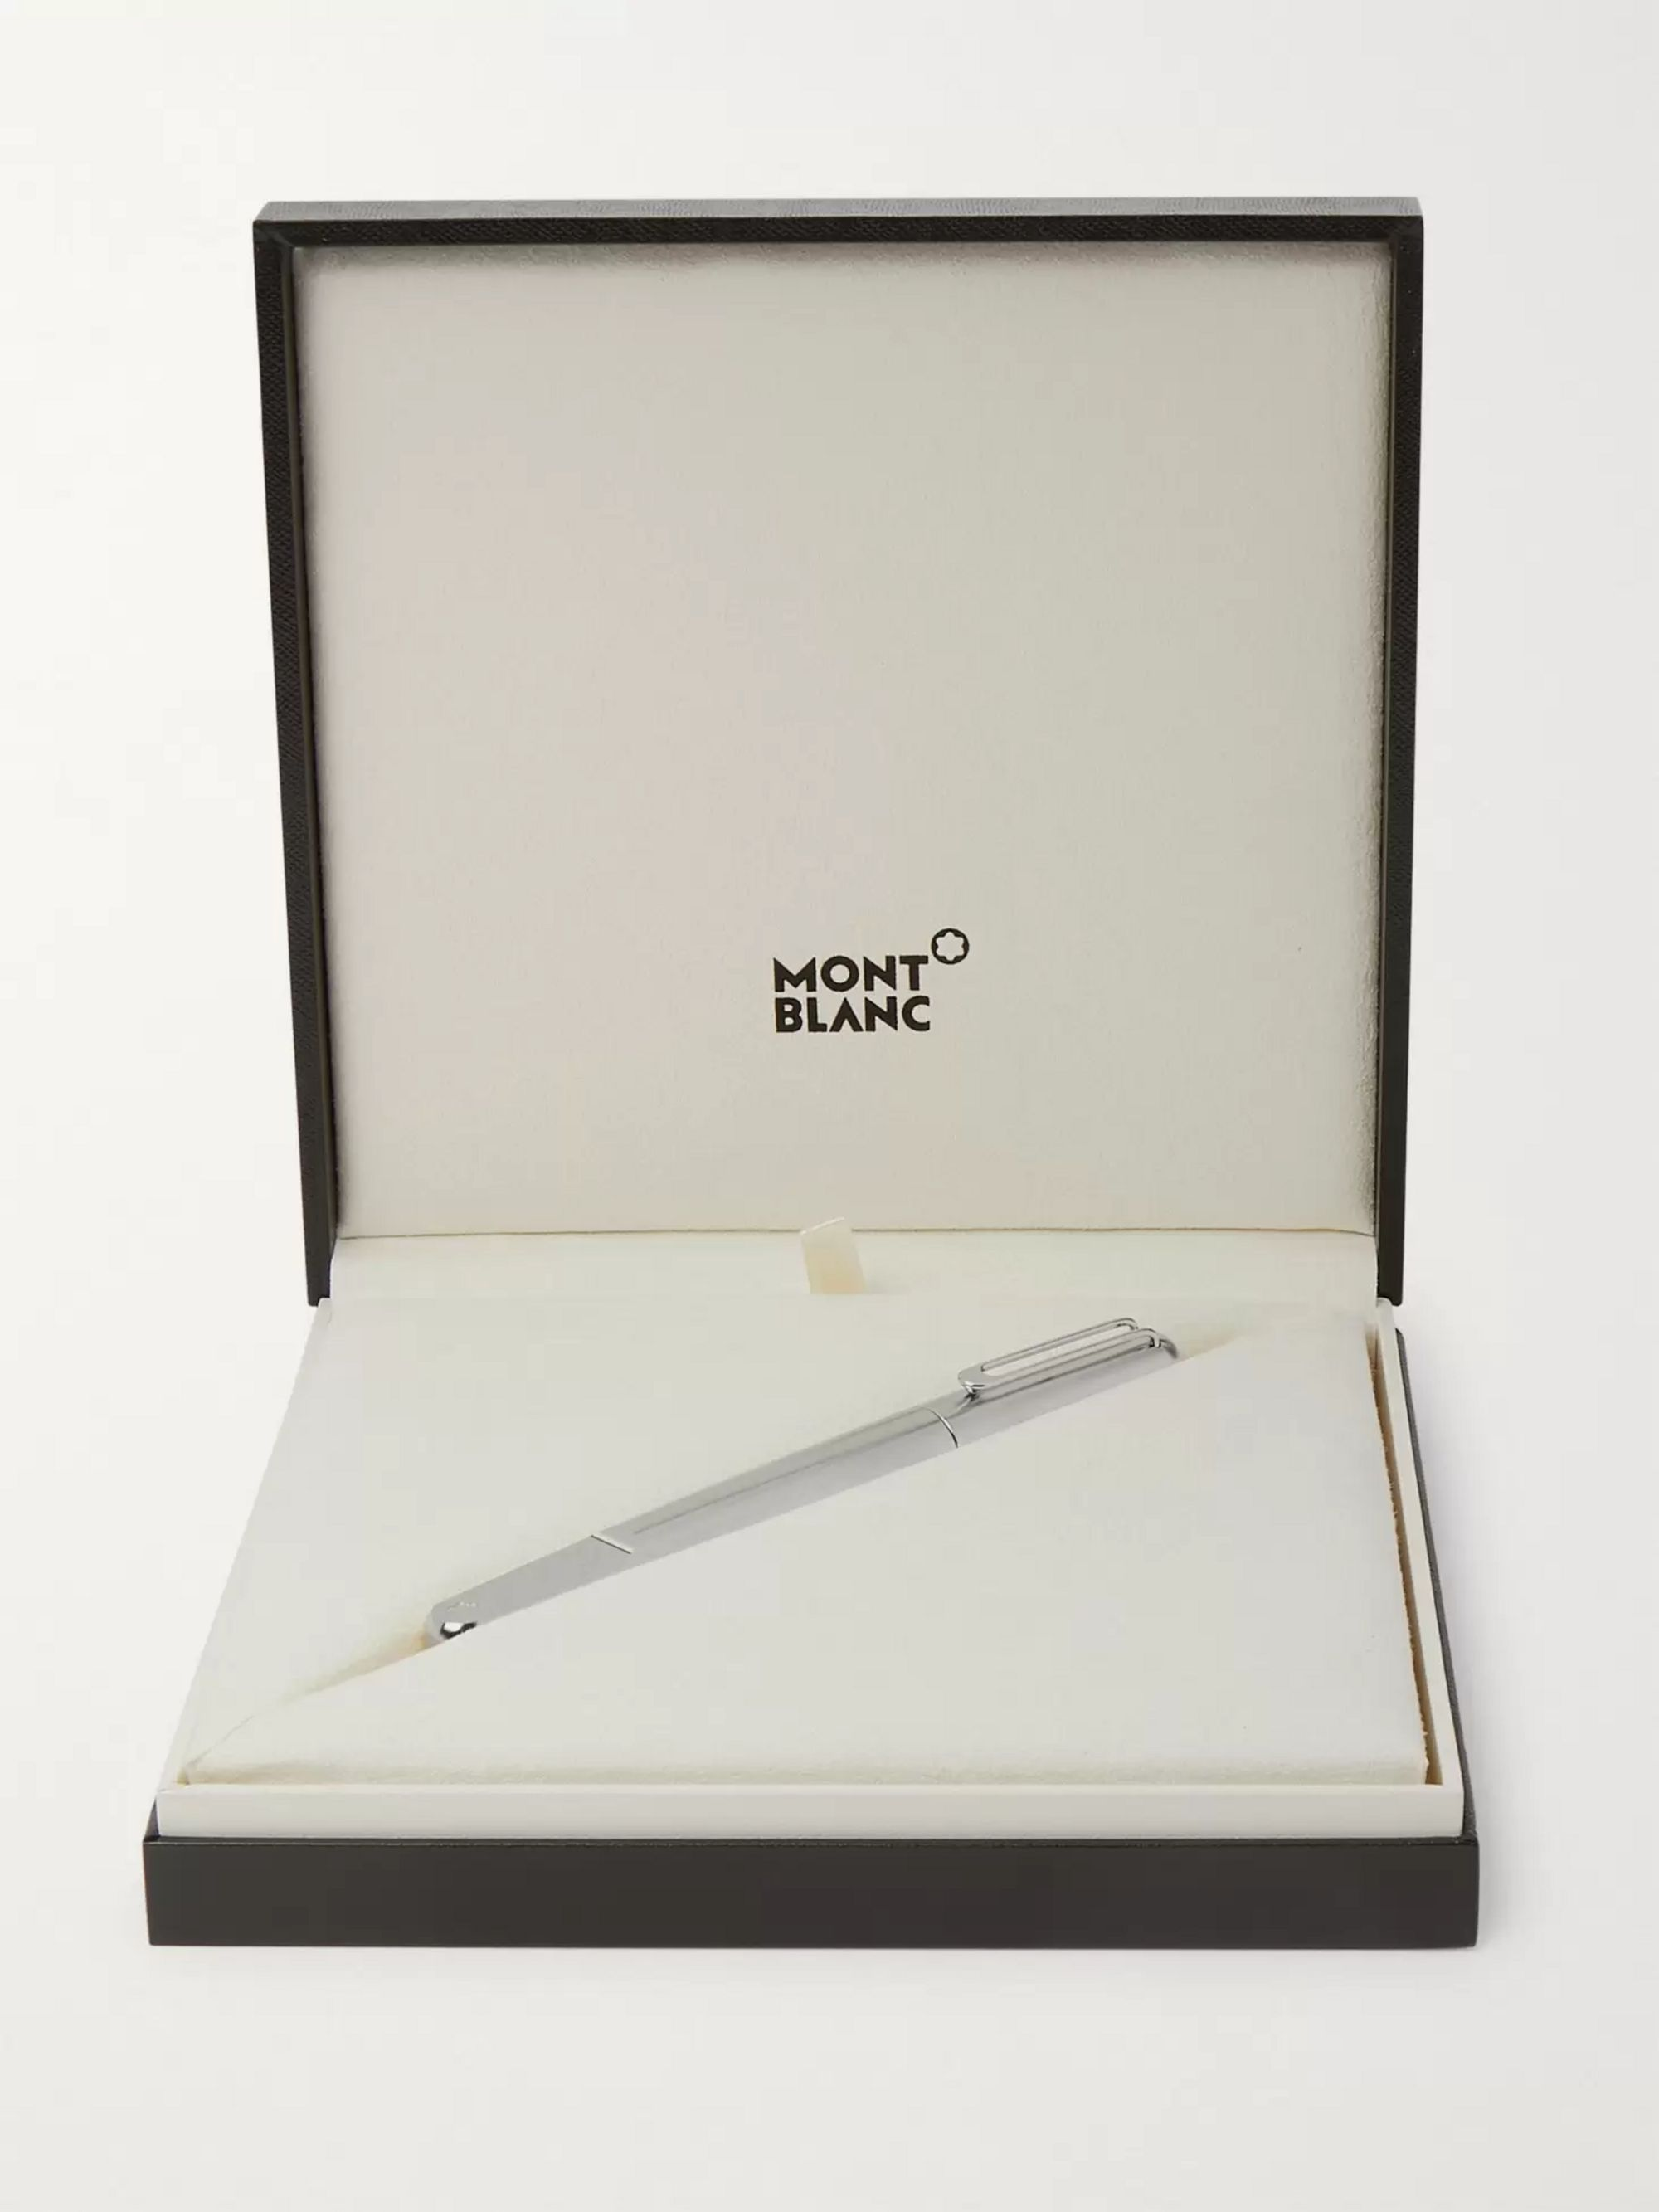 MONTBLANC (Montblanc M) RED Signature Resin-Trimmed Palladium-Plated Fountain Pen